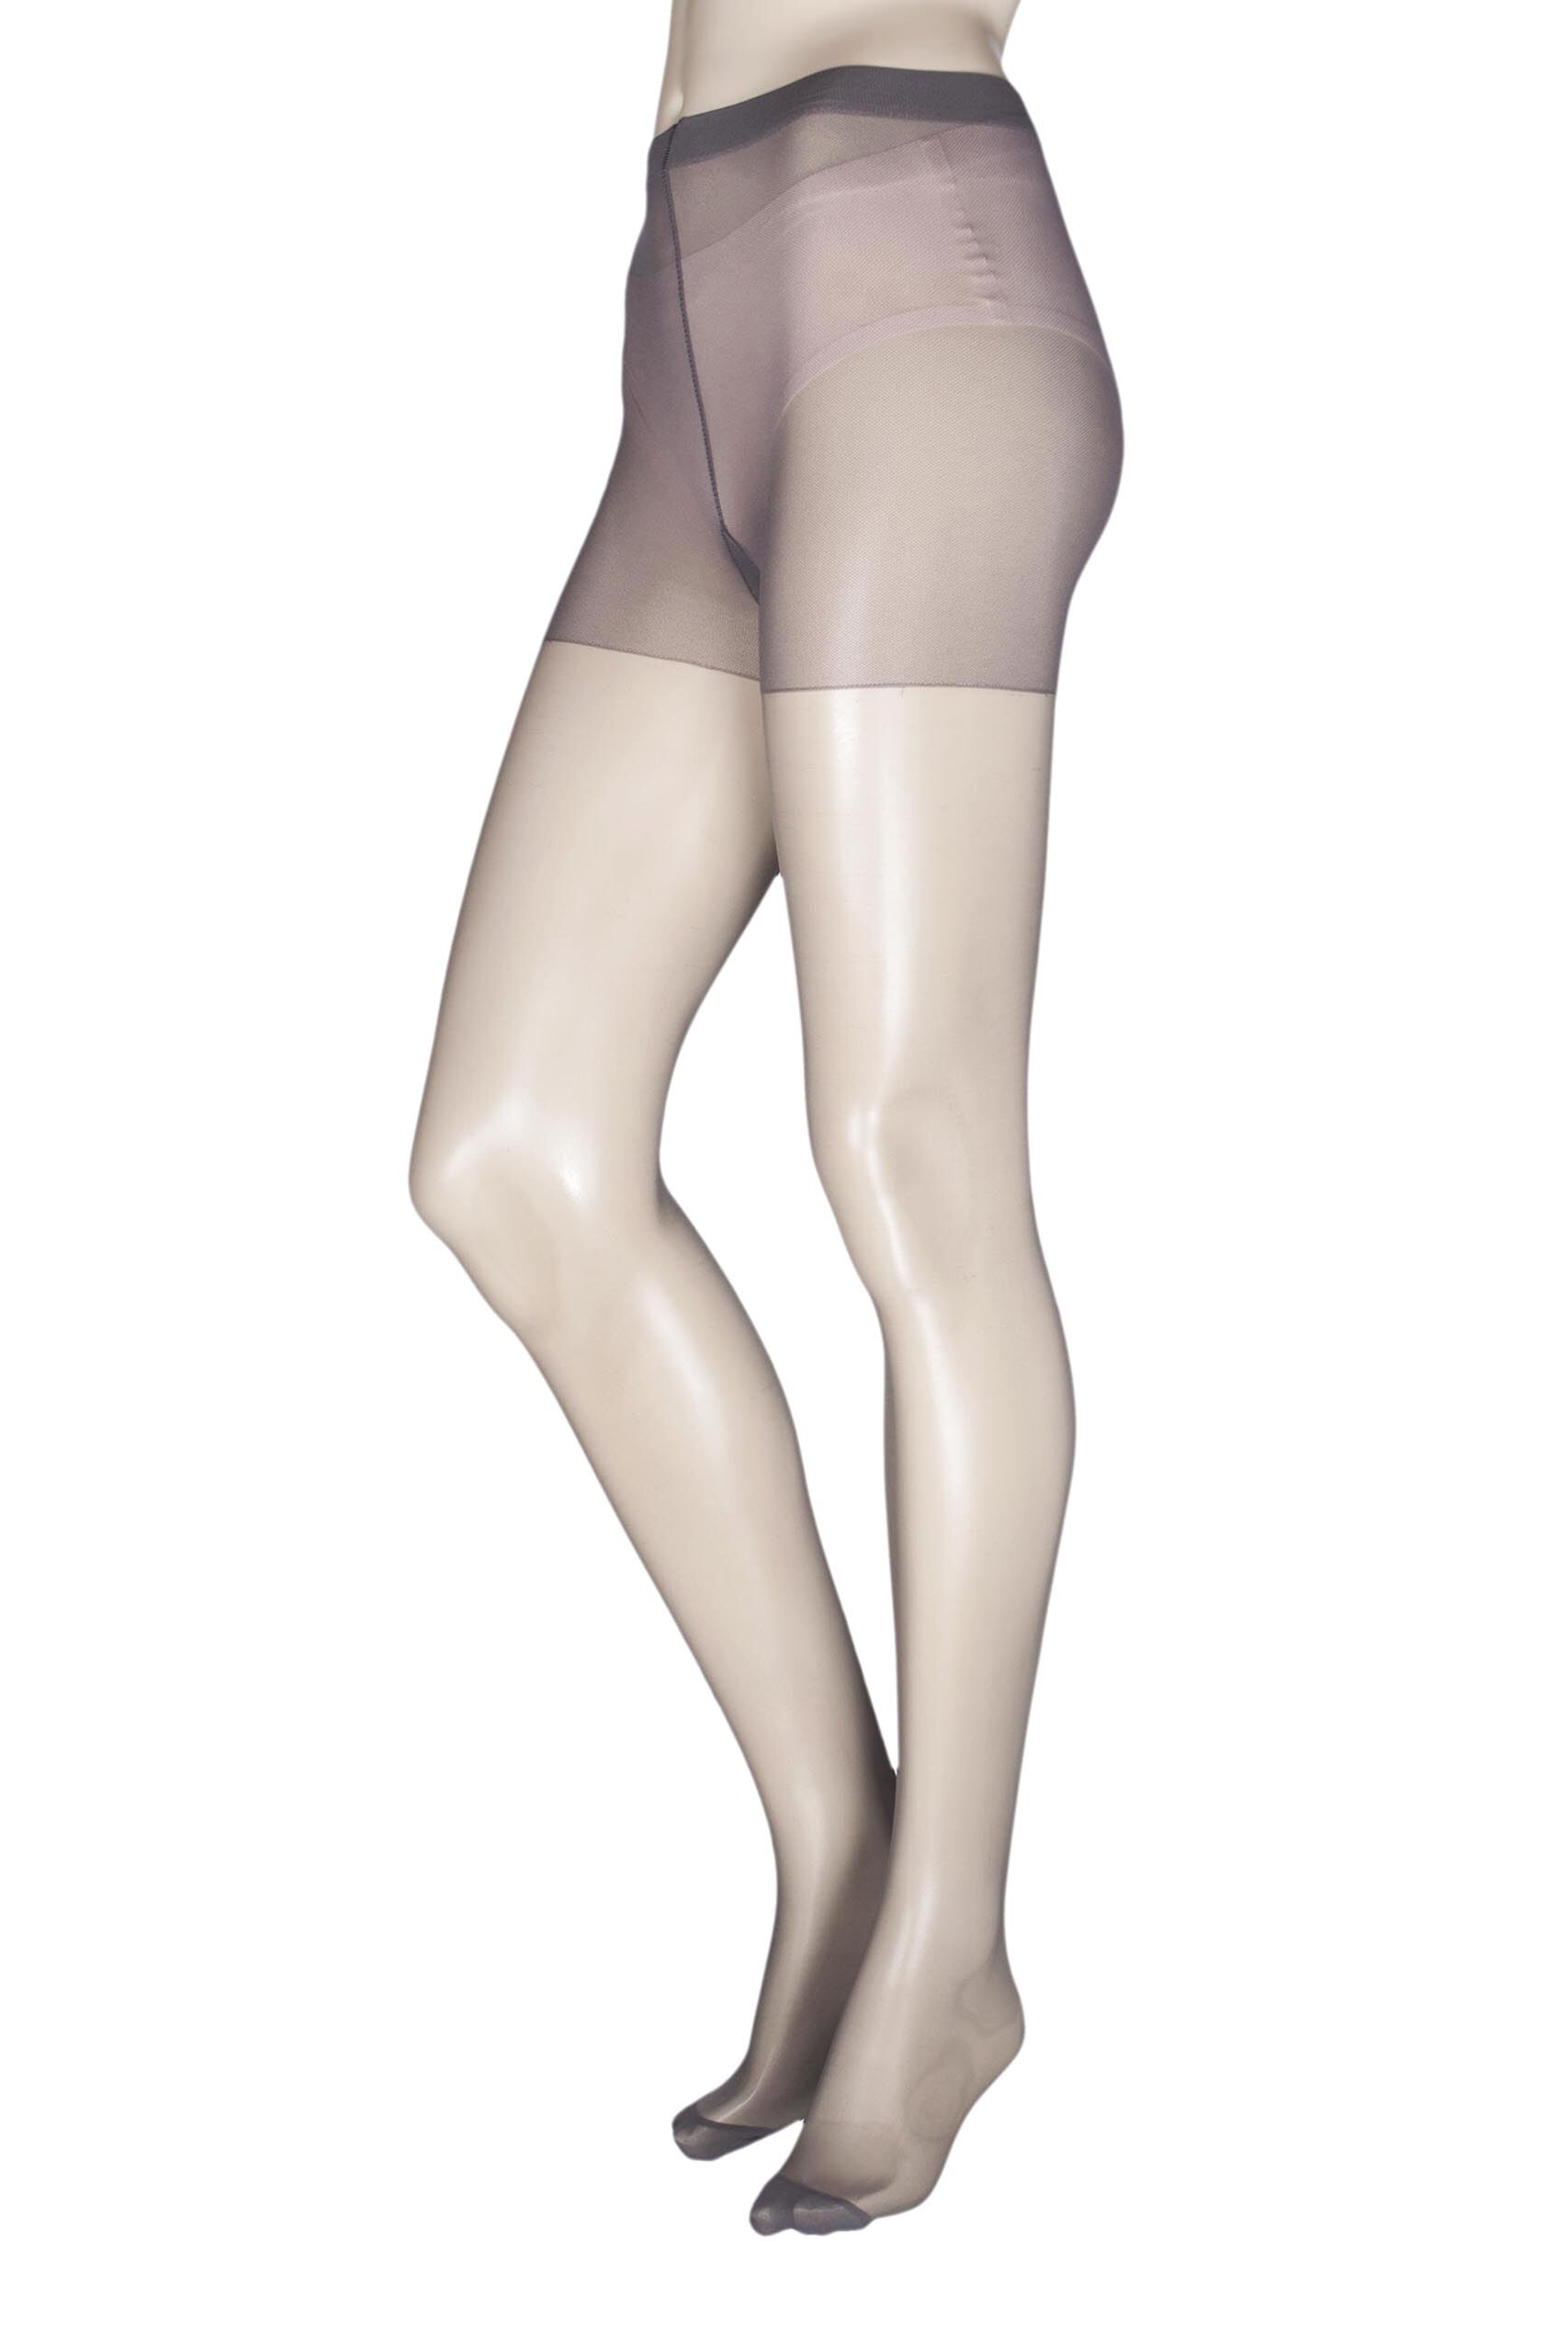 Image of 1 Pair Anthracite Class Tights Ladies Small - Levante